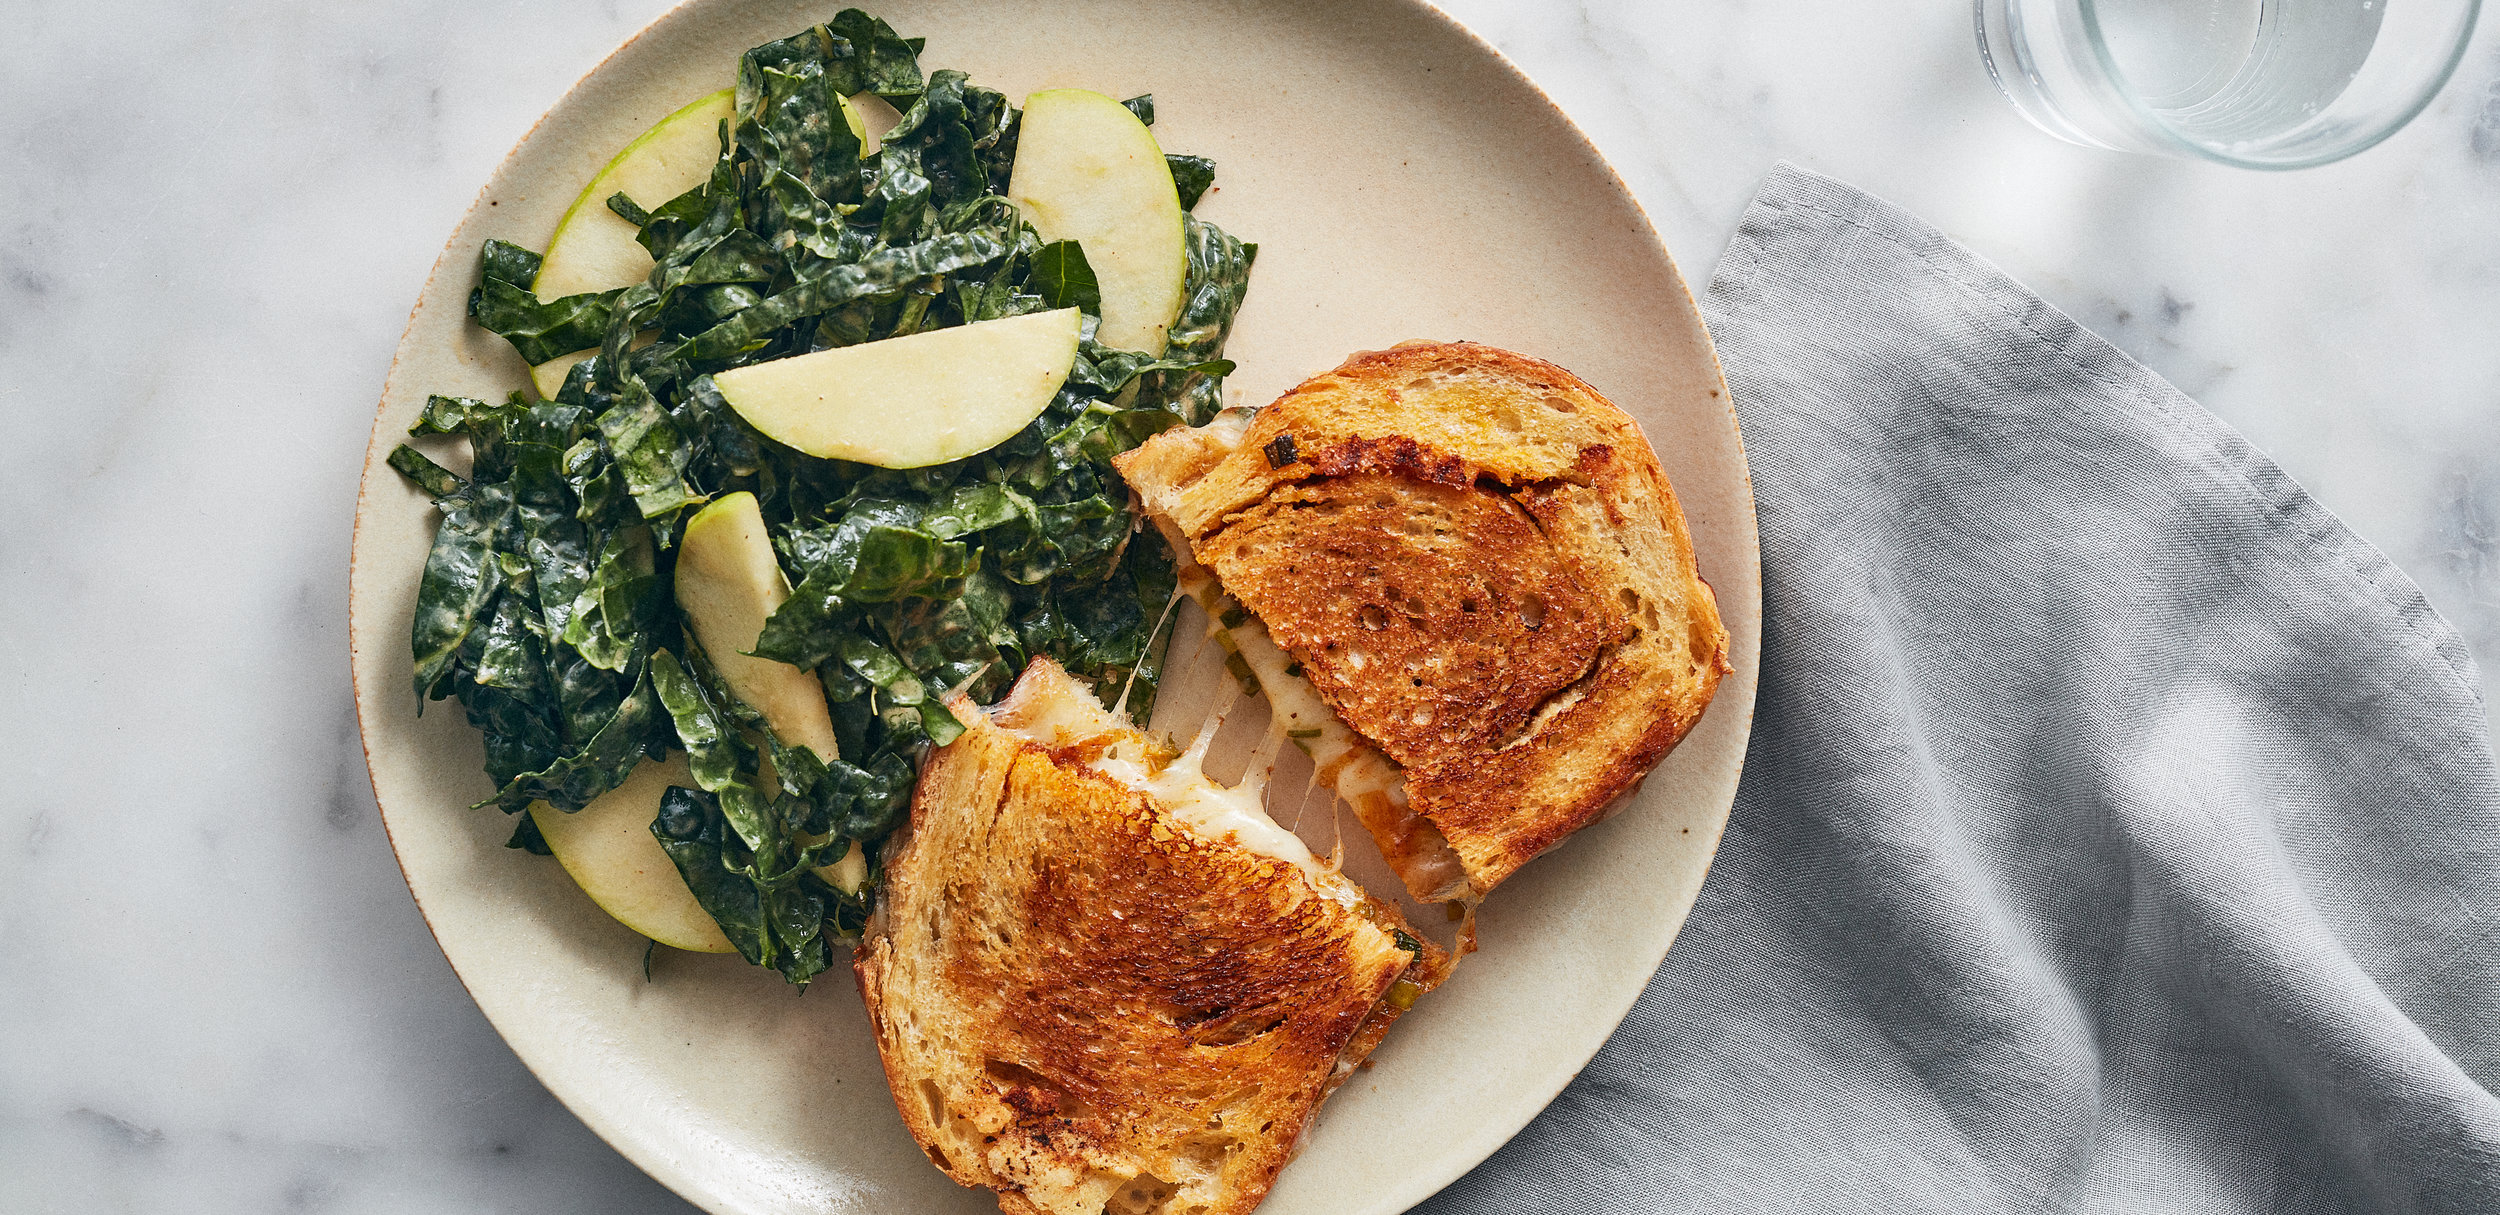 Gochujang Grilled Cheese with Peanut-Kale Salad — 0007 — HERO.jpg